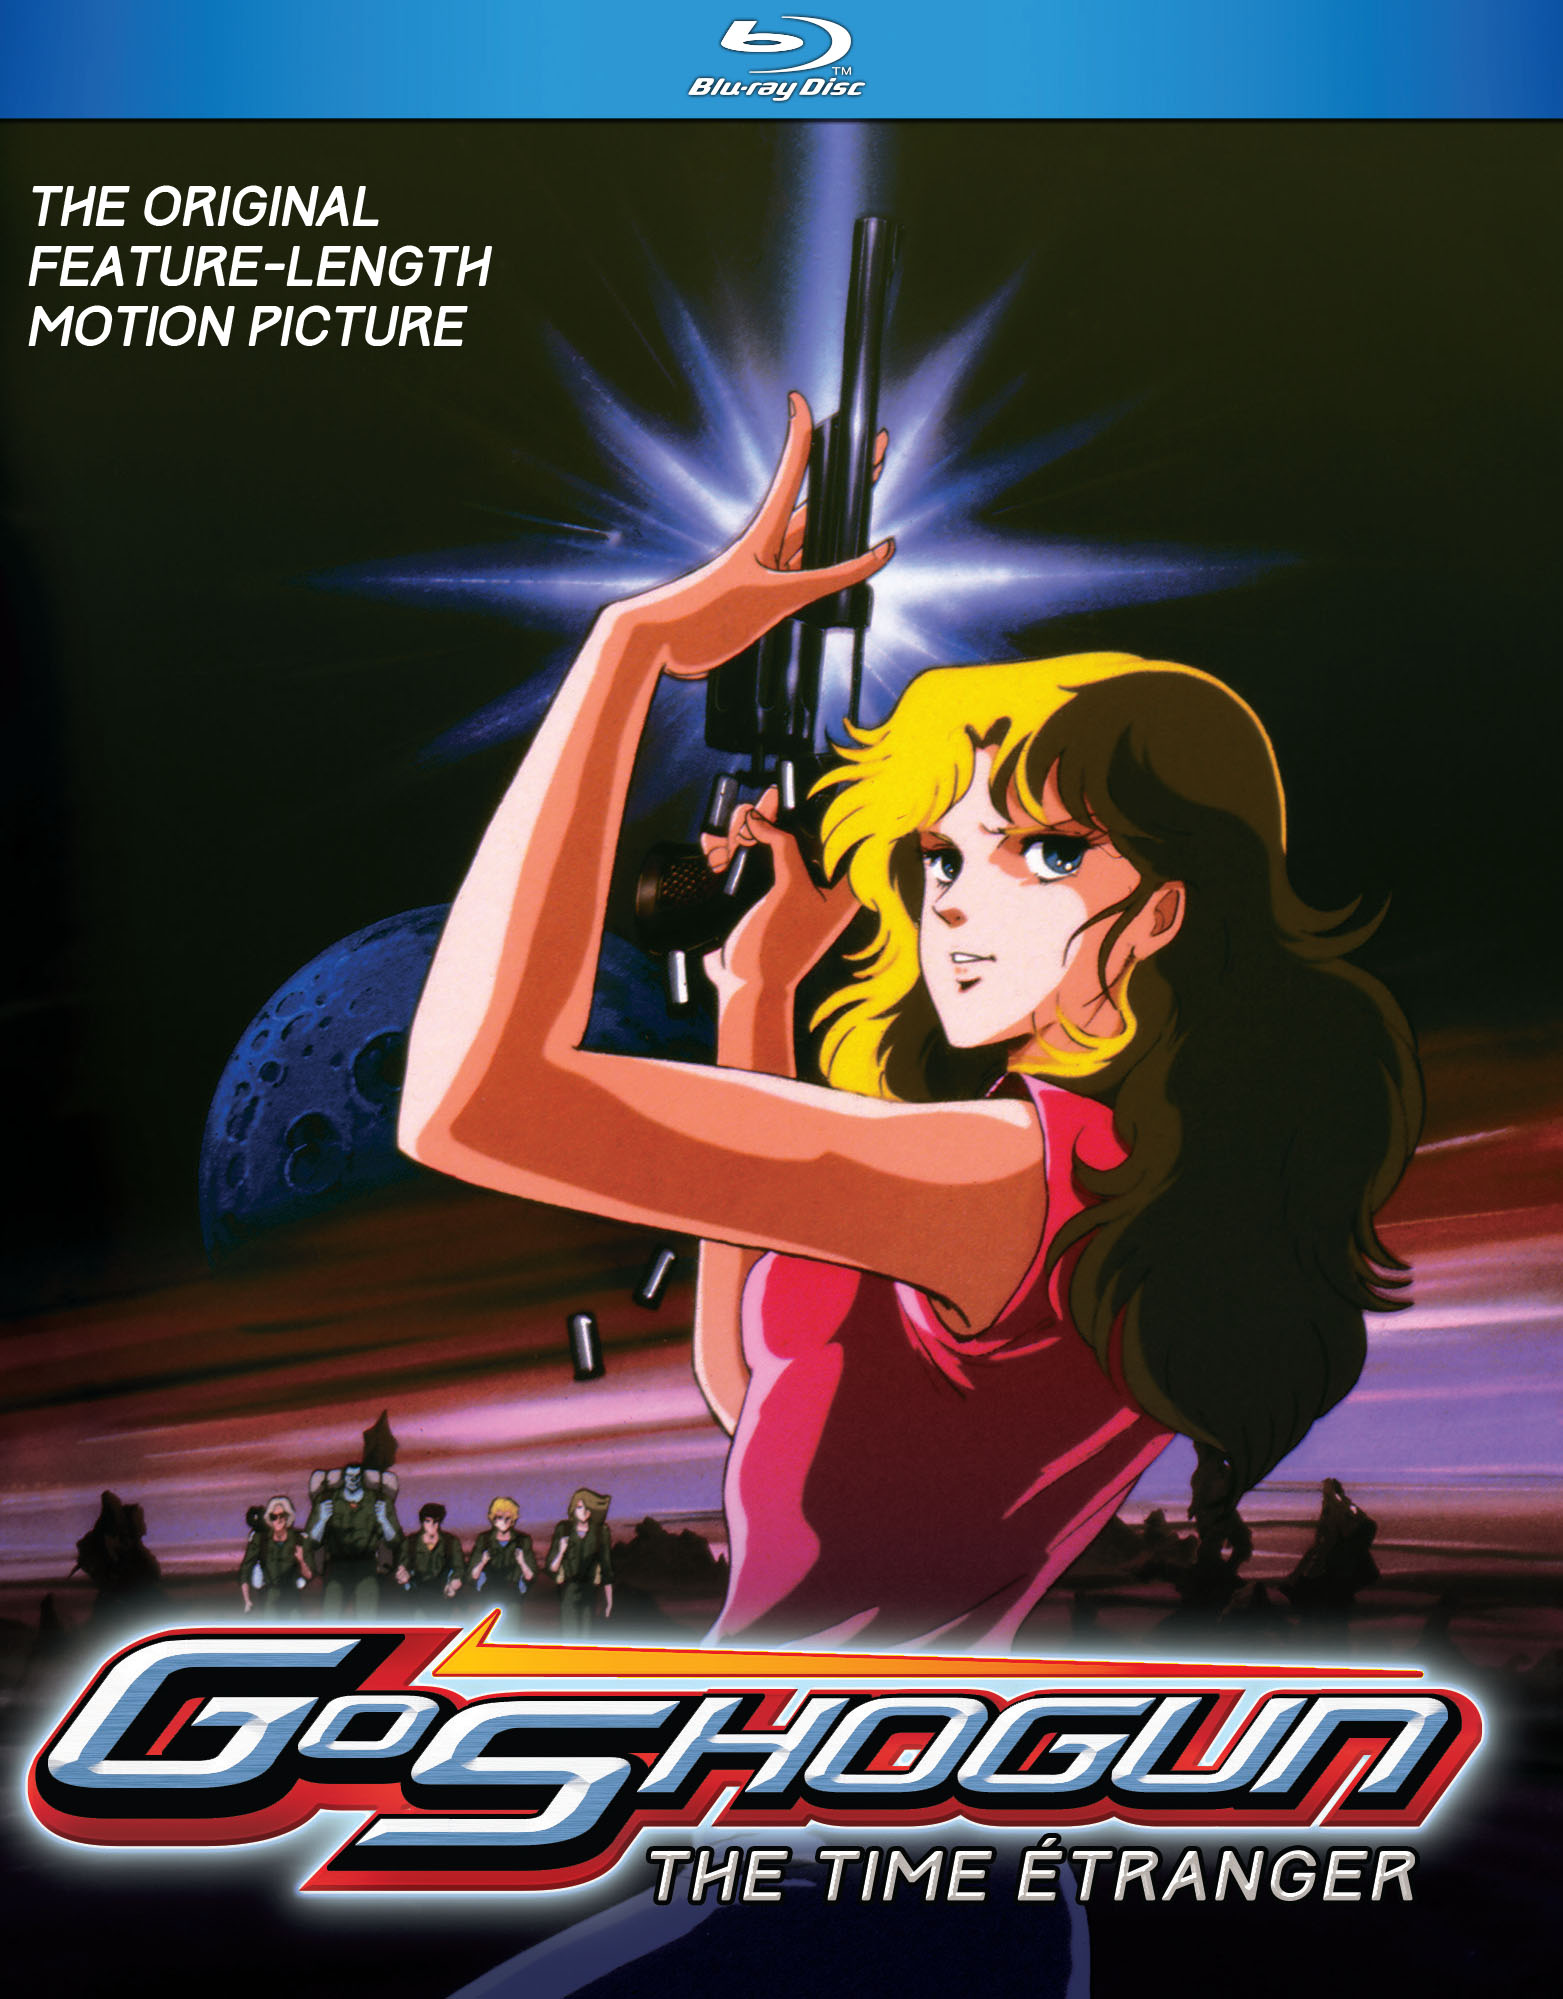 Goshogun The Time Etranger Blu-ray 875707182027